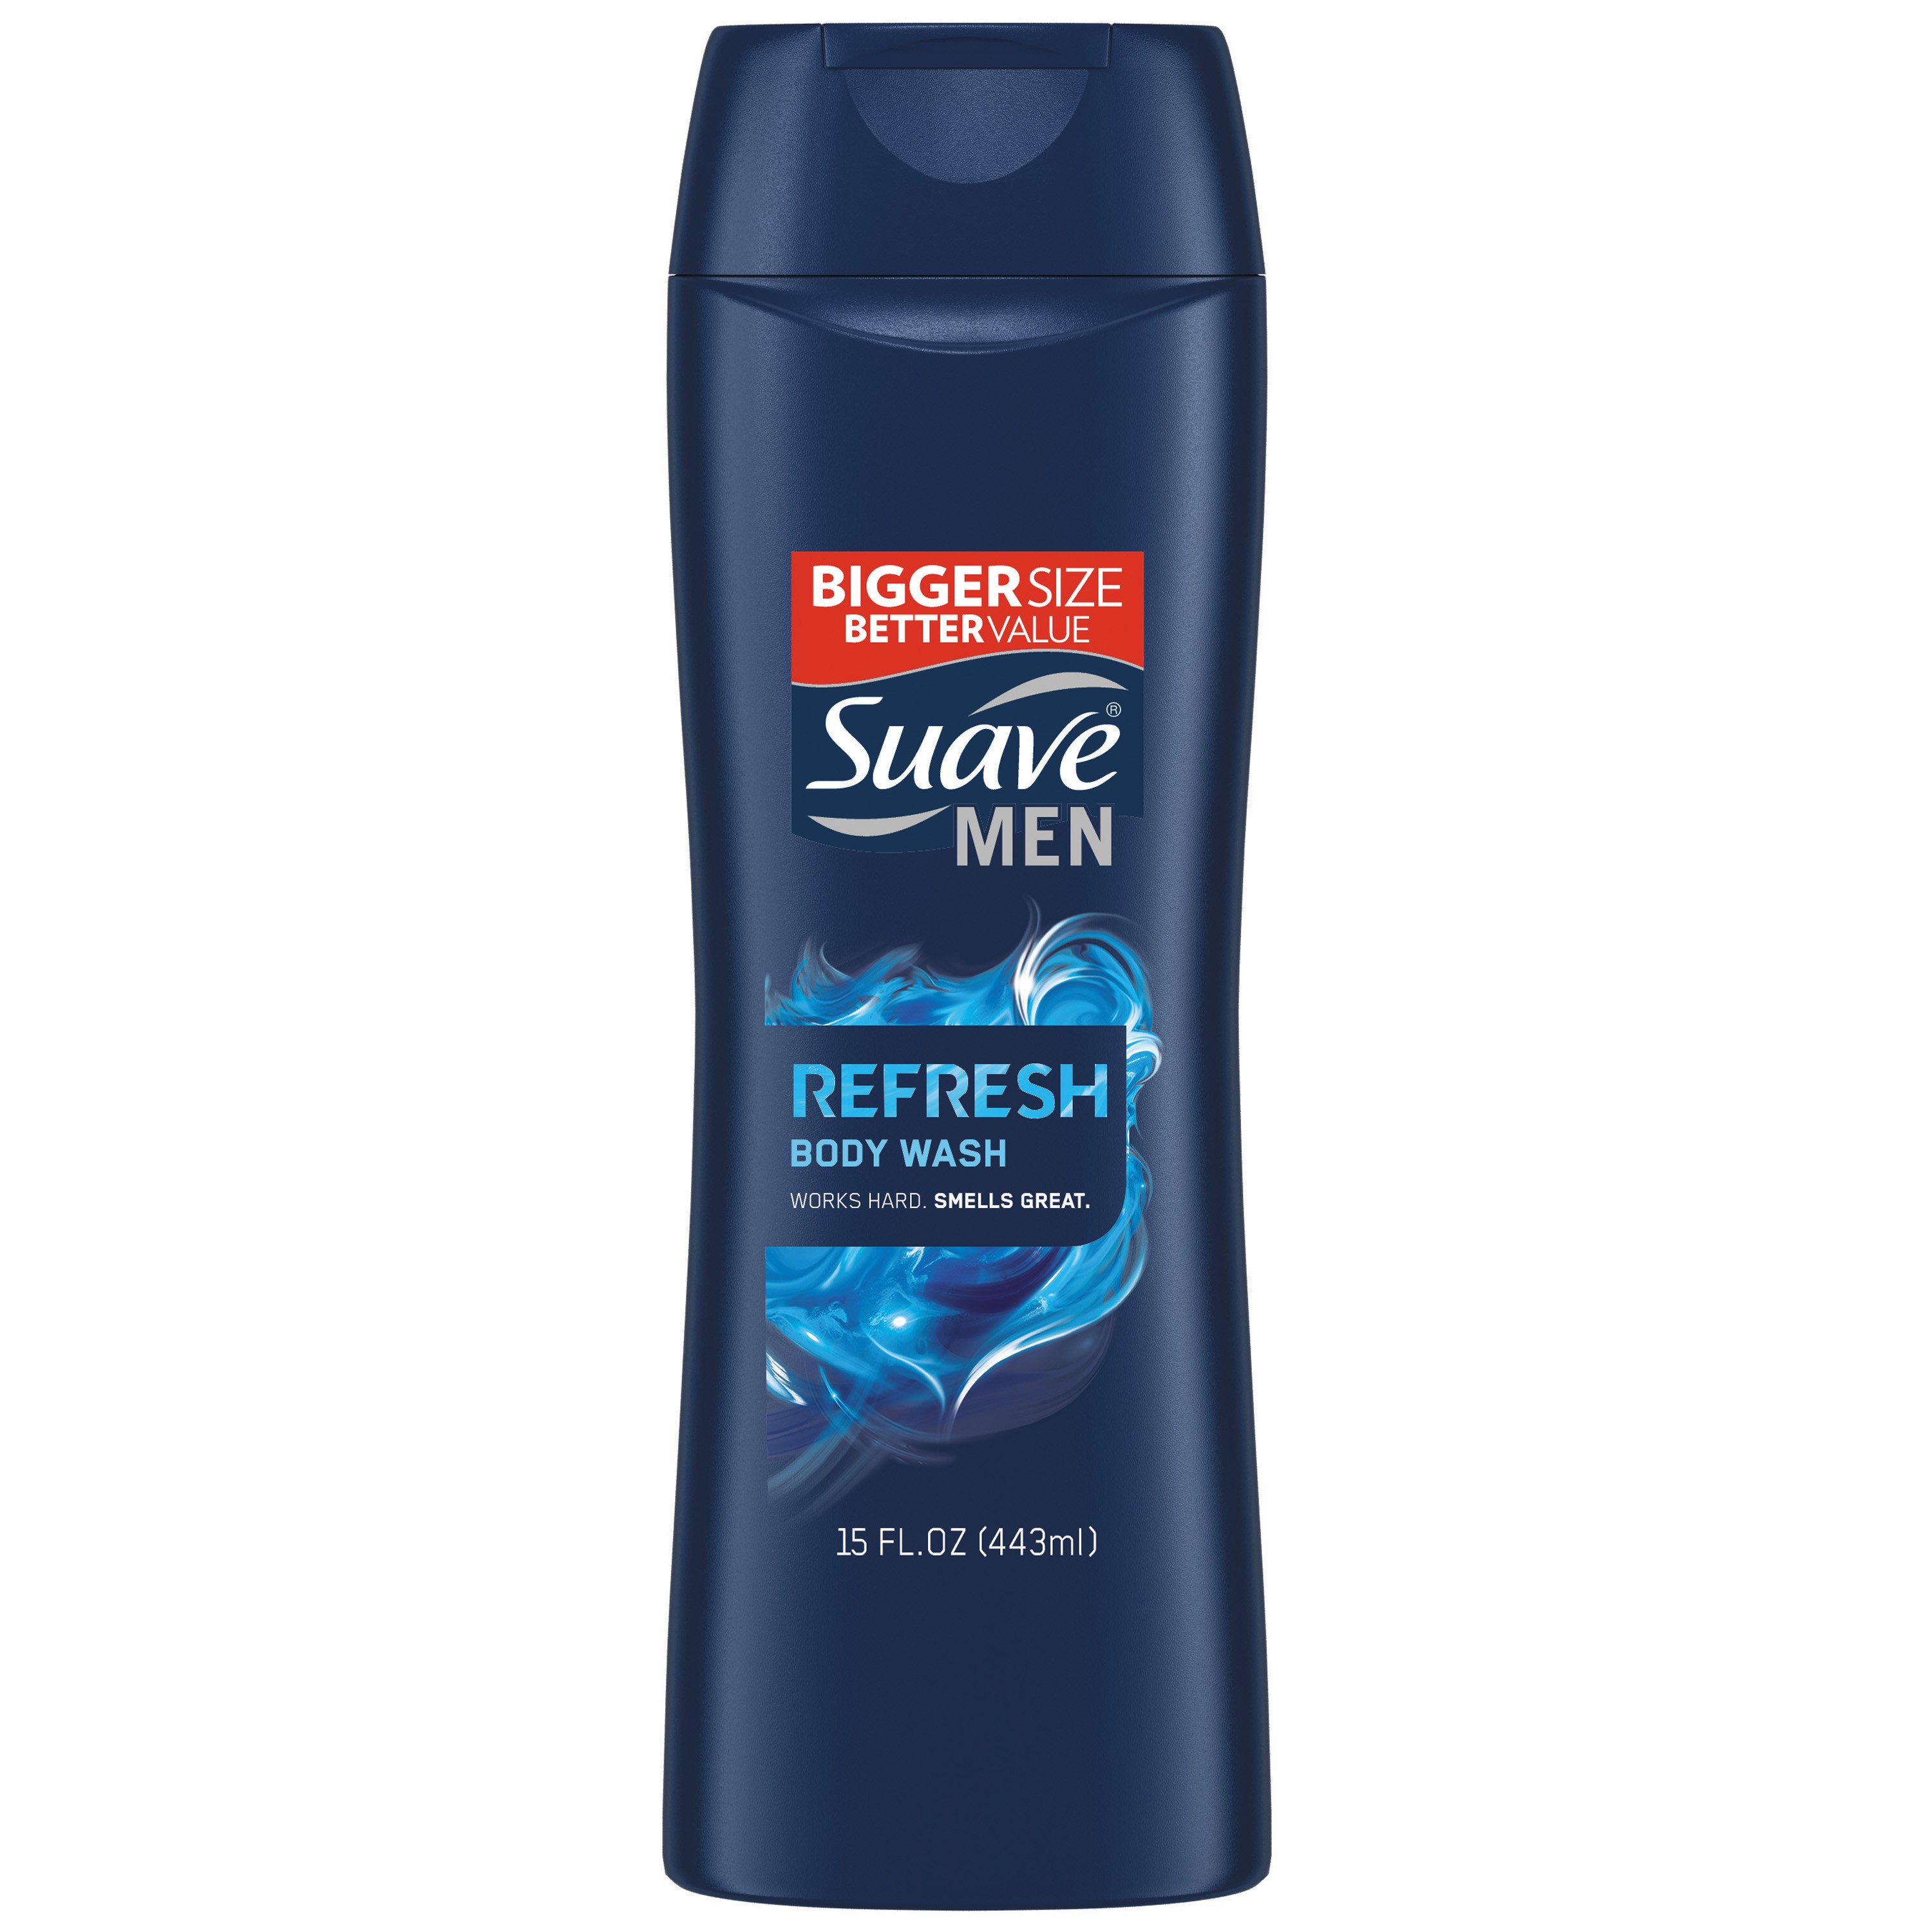 Suave Men Refresh Body Wash 15 oz